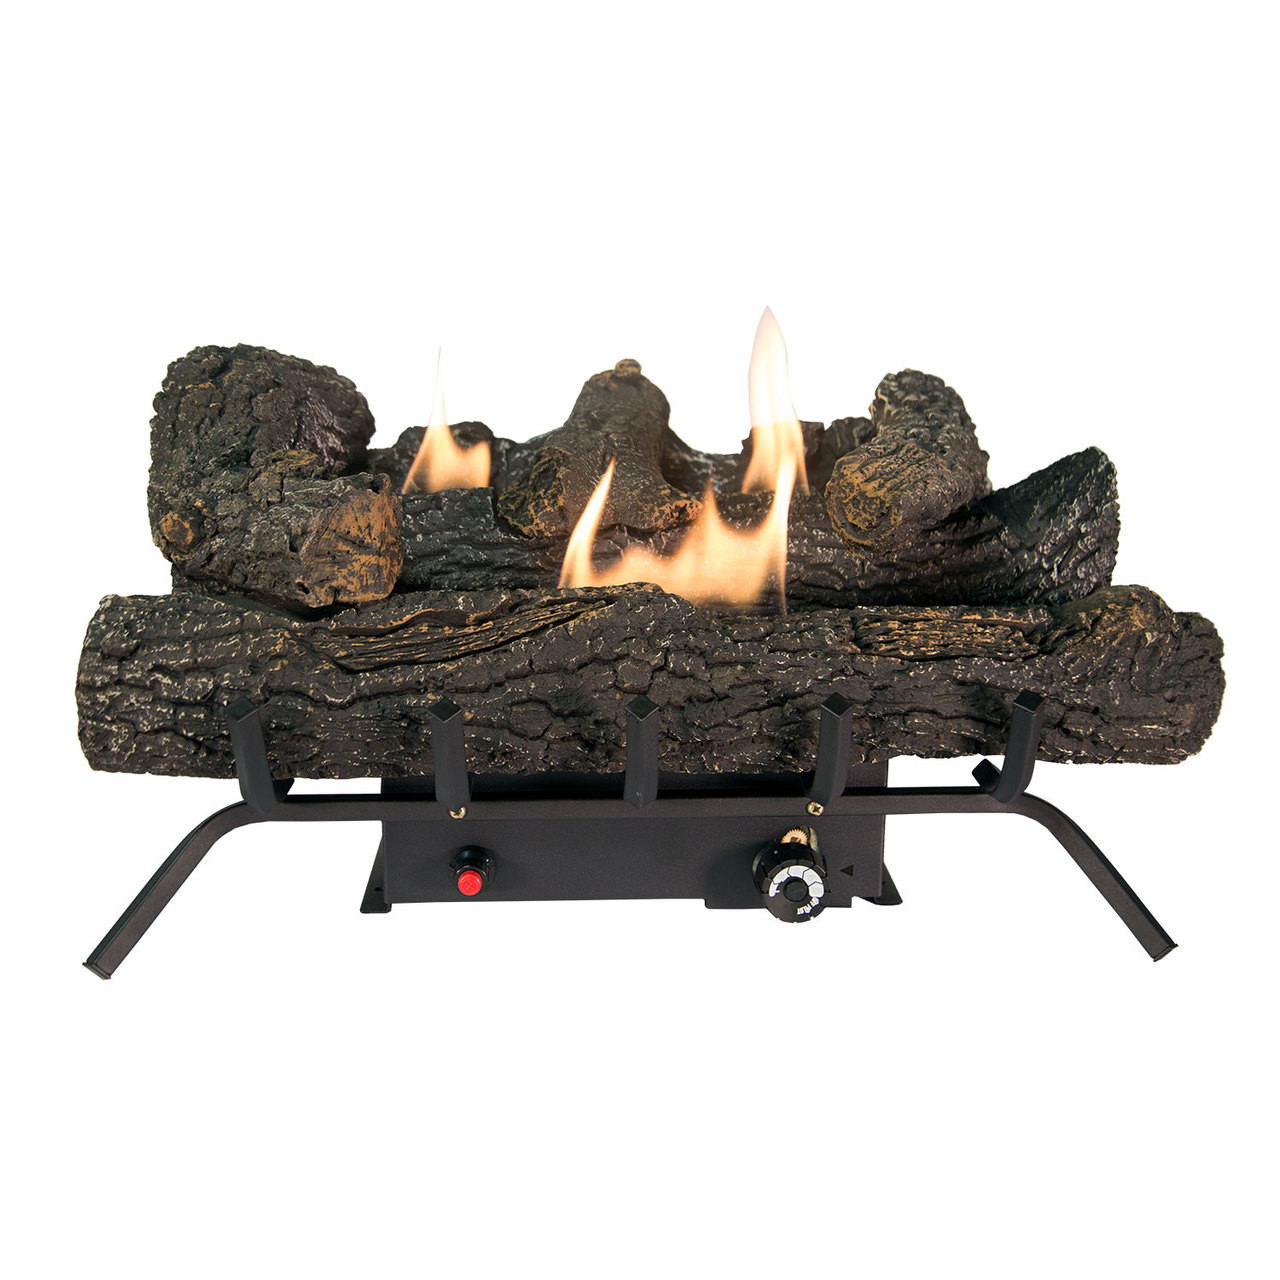 Comfort Glow Gld2456t Propane Lp Or Natural Gas Ng Vent Free 24 In Black Forest Log Set 30 000 Btus World Marketing Of America Inc